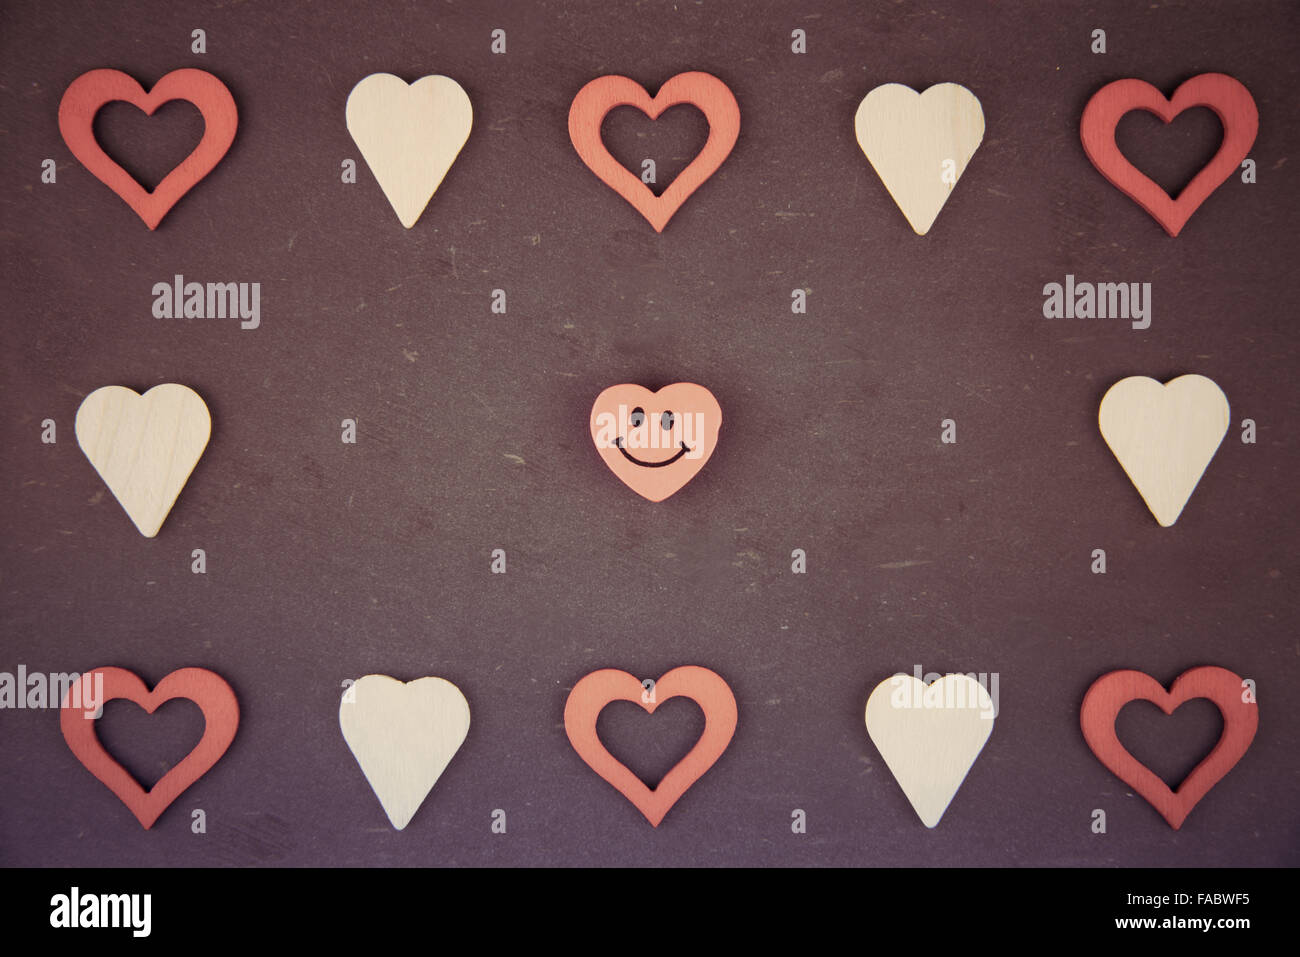 Heart Shapes Symbols And Smiling Emoticon Isolated On Black Vintage